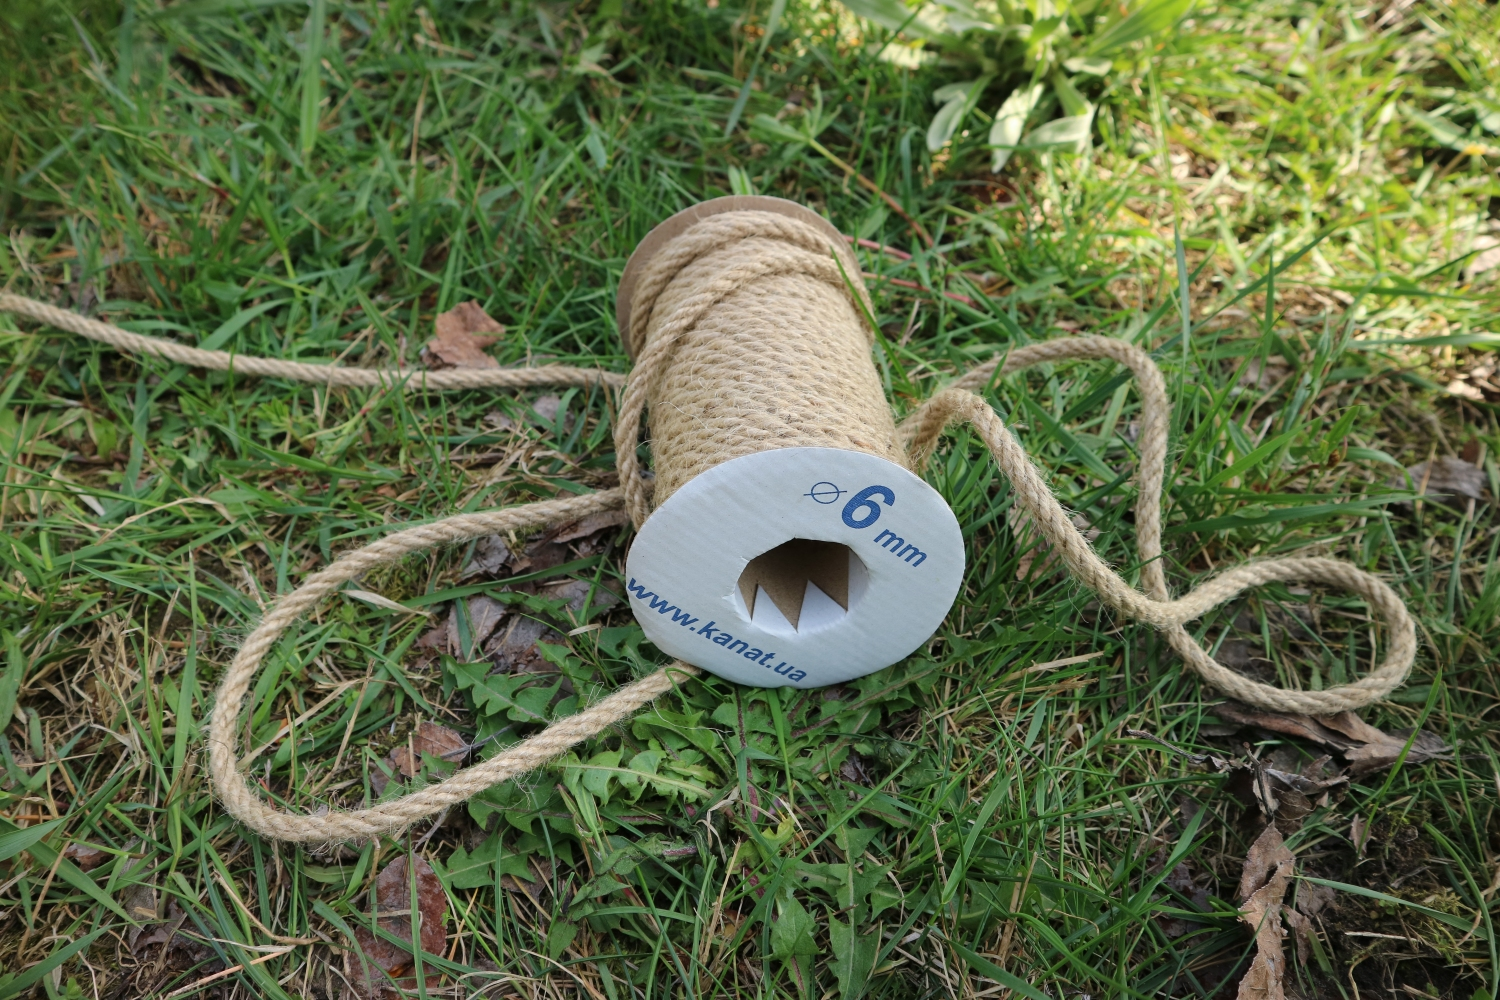 Jute rope Ø 6mm, 25 meters - 3